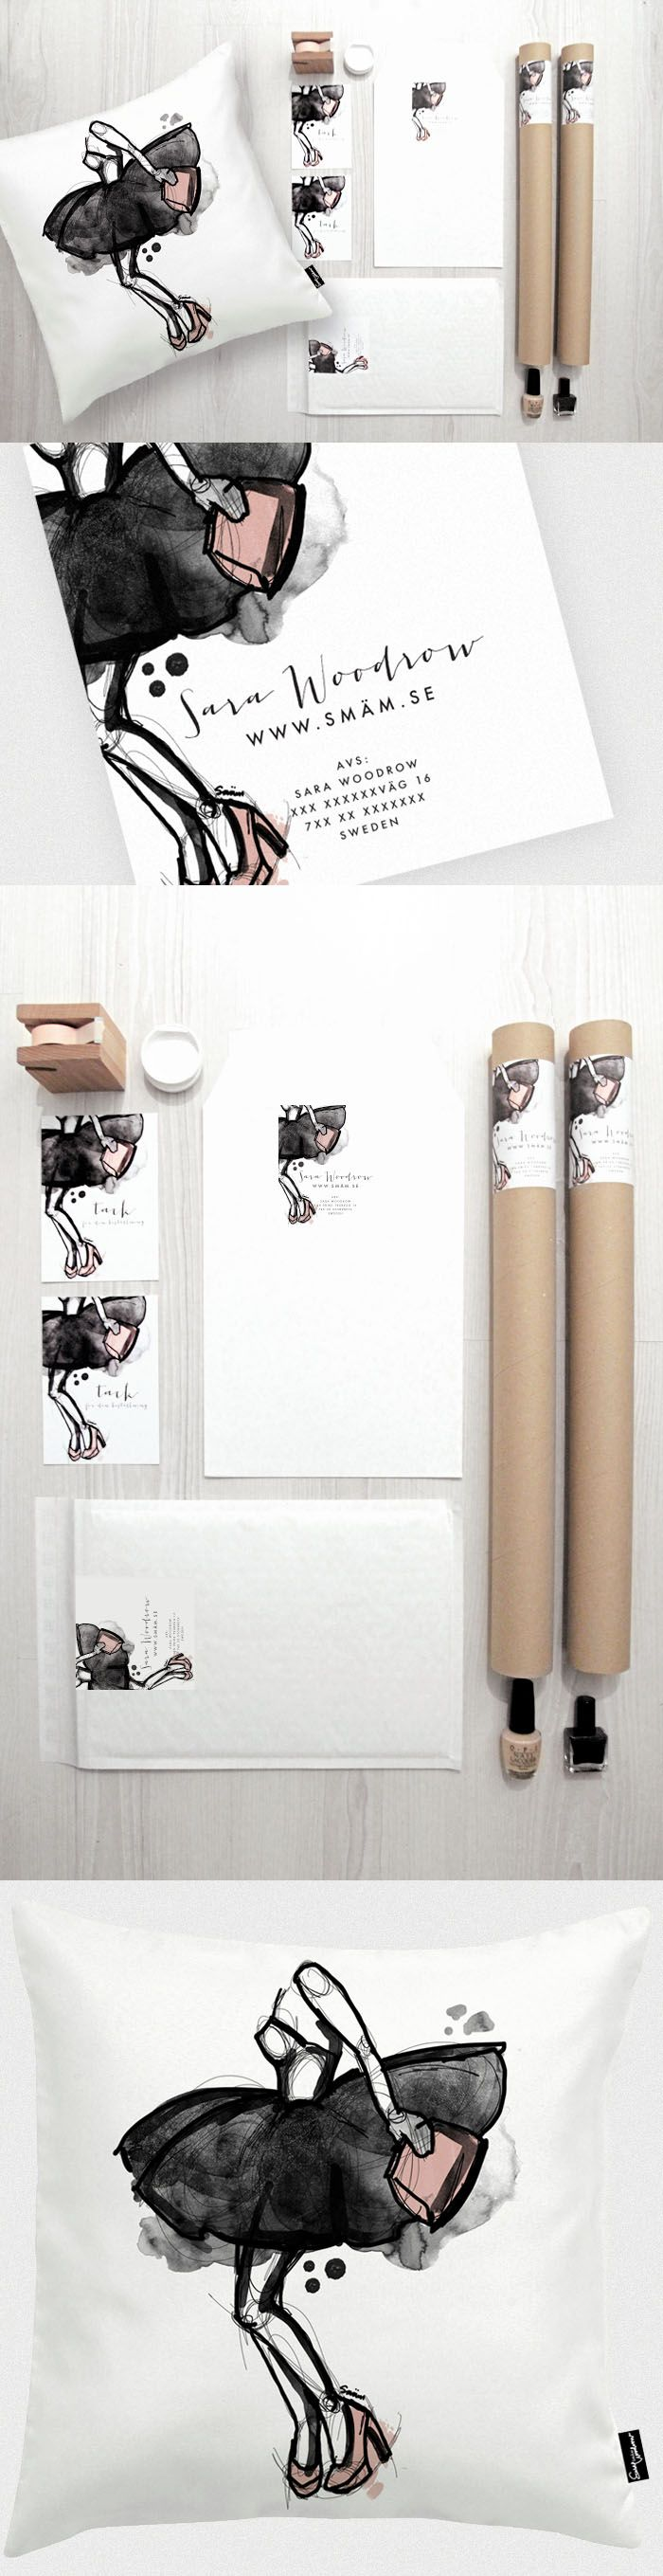 "Sara ""SMÄM"" Woodrow identity packaging branding. Oldie but goodie form the same designer. PD"